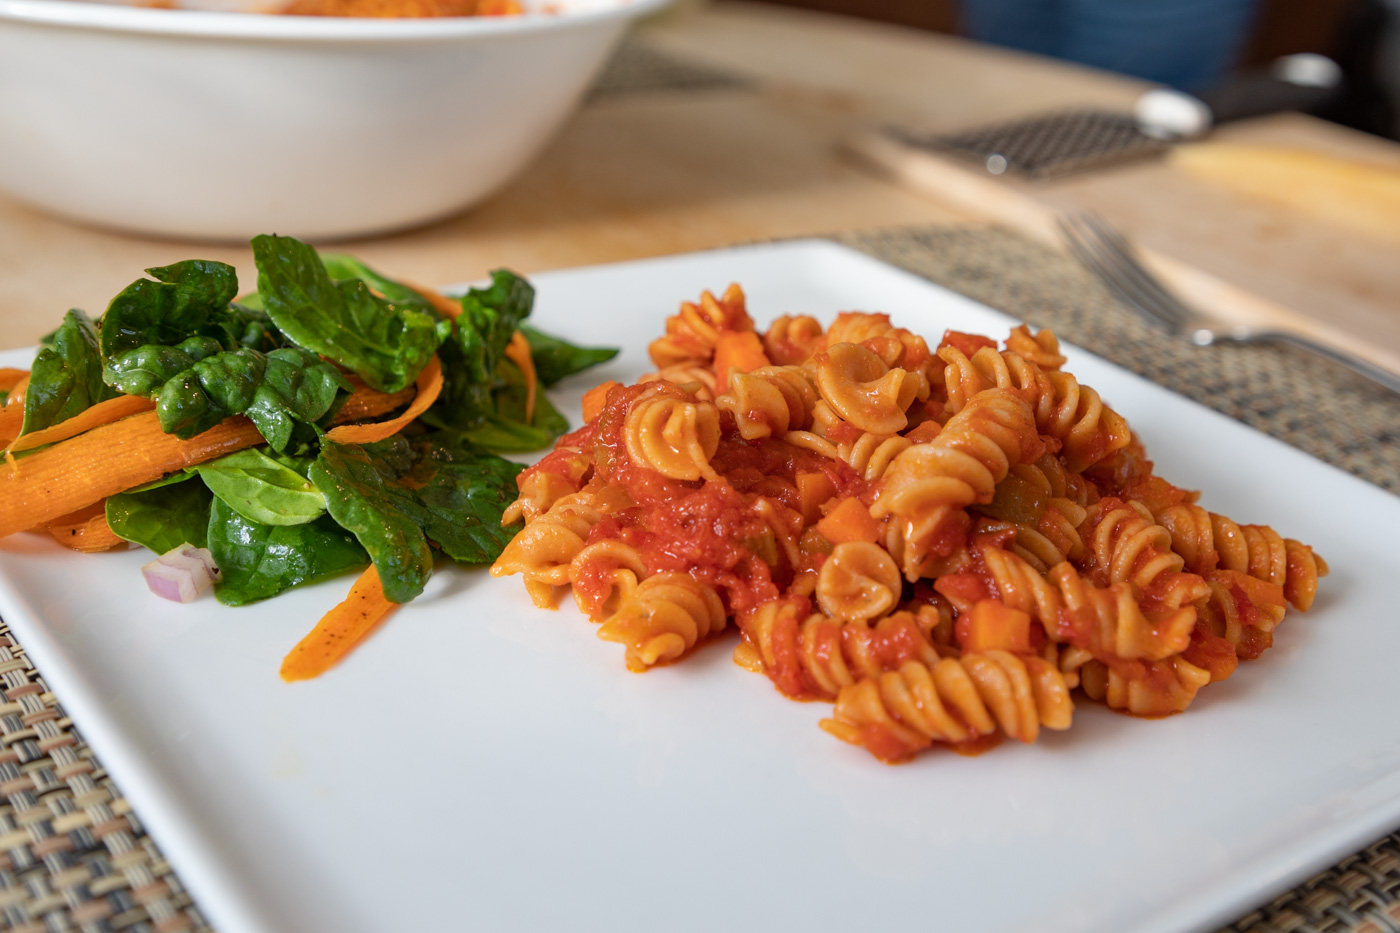 Pasta with Sauteed Vegetable Tomato Sauce